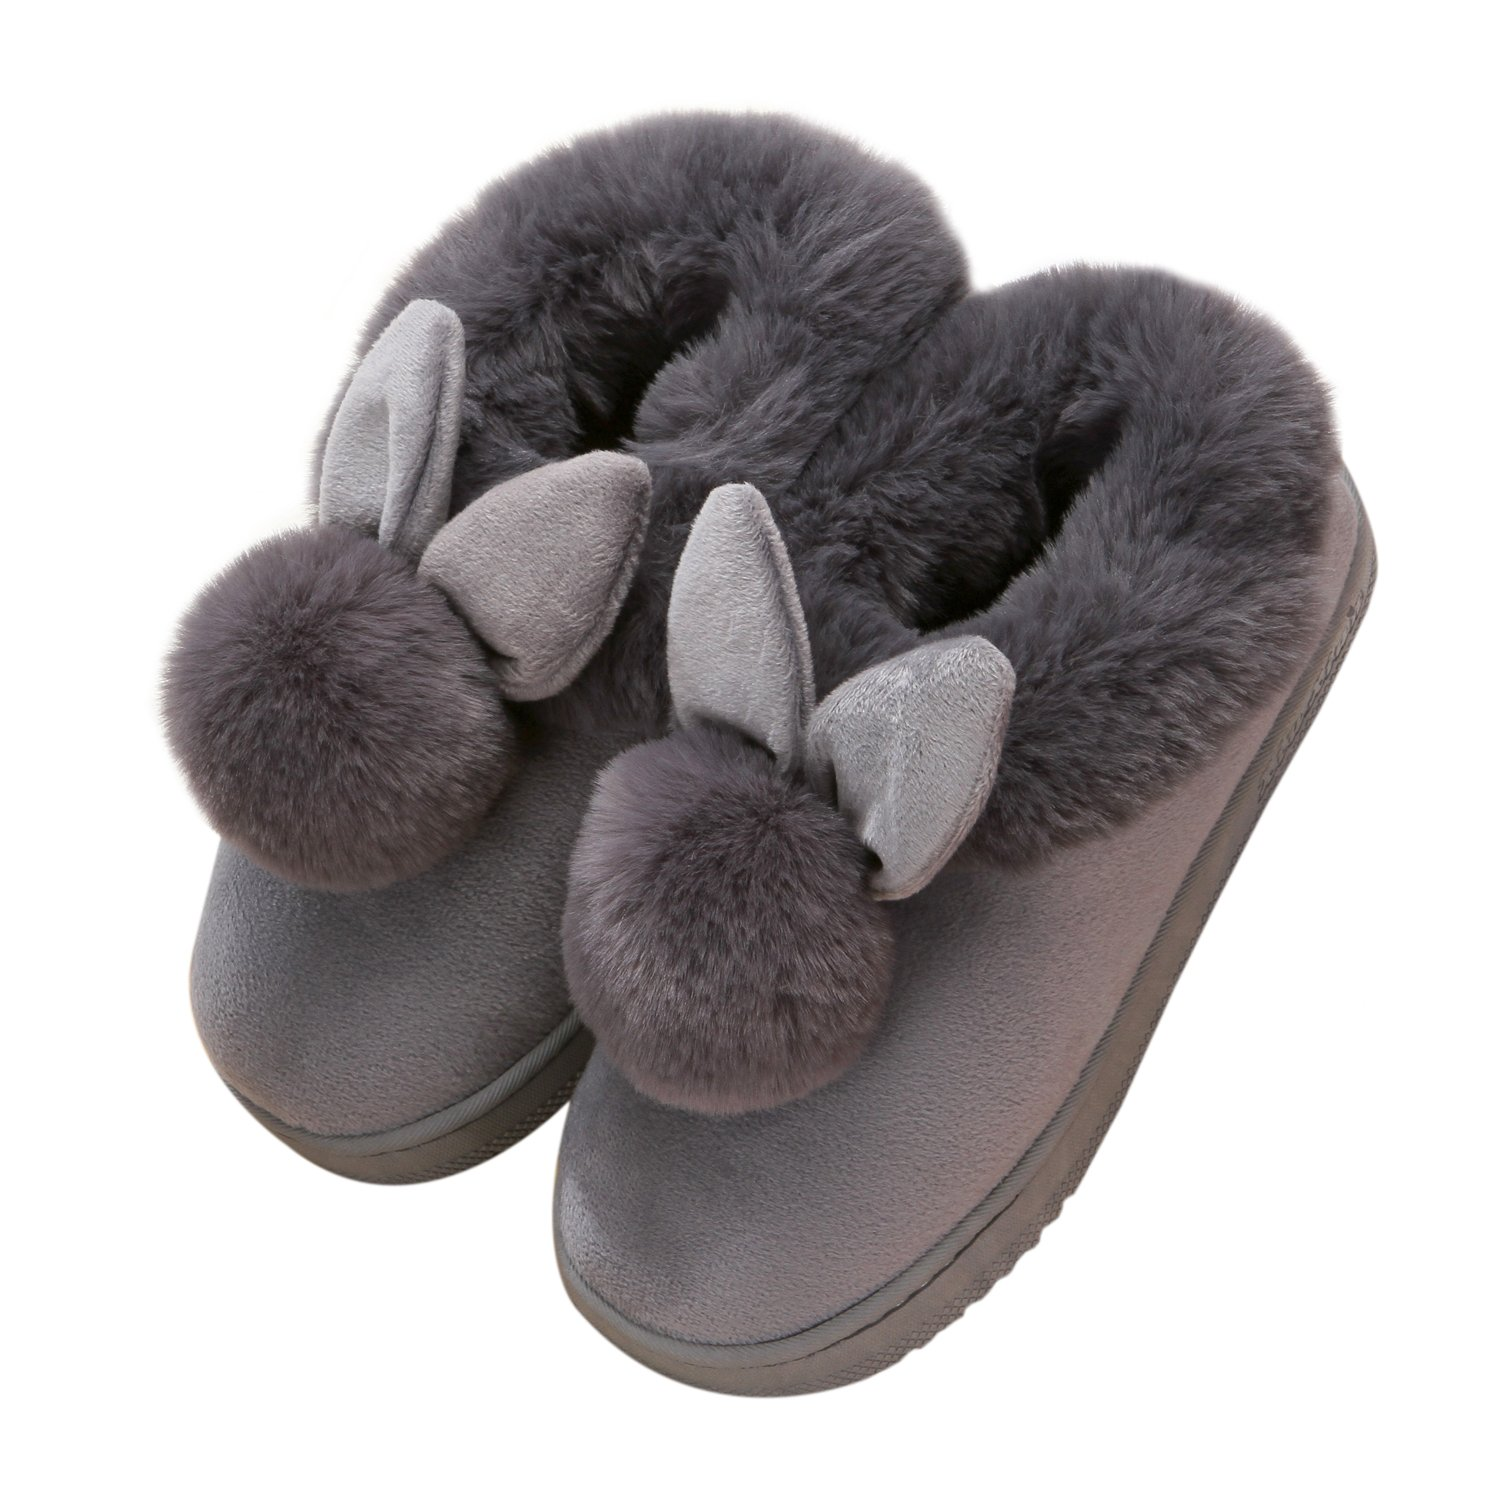 YOWOO Soft Plush Warm Bedroom Indoor Non Slip Slippers for Women Cute Bunny Style (Grey S)